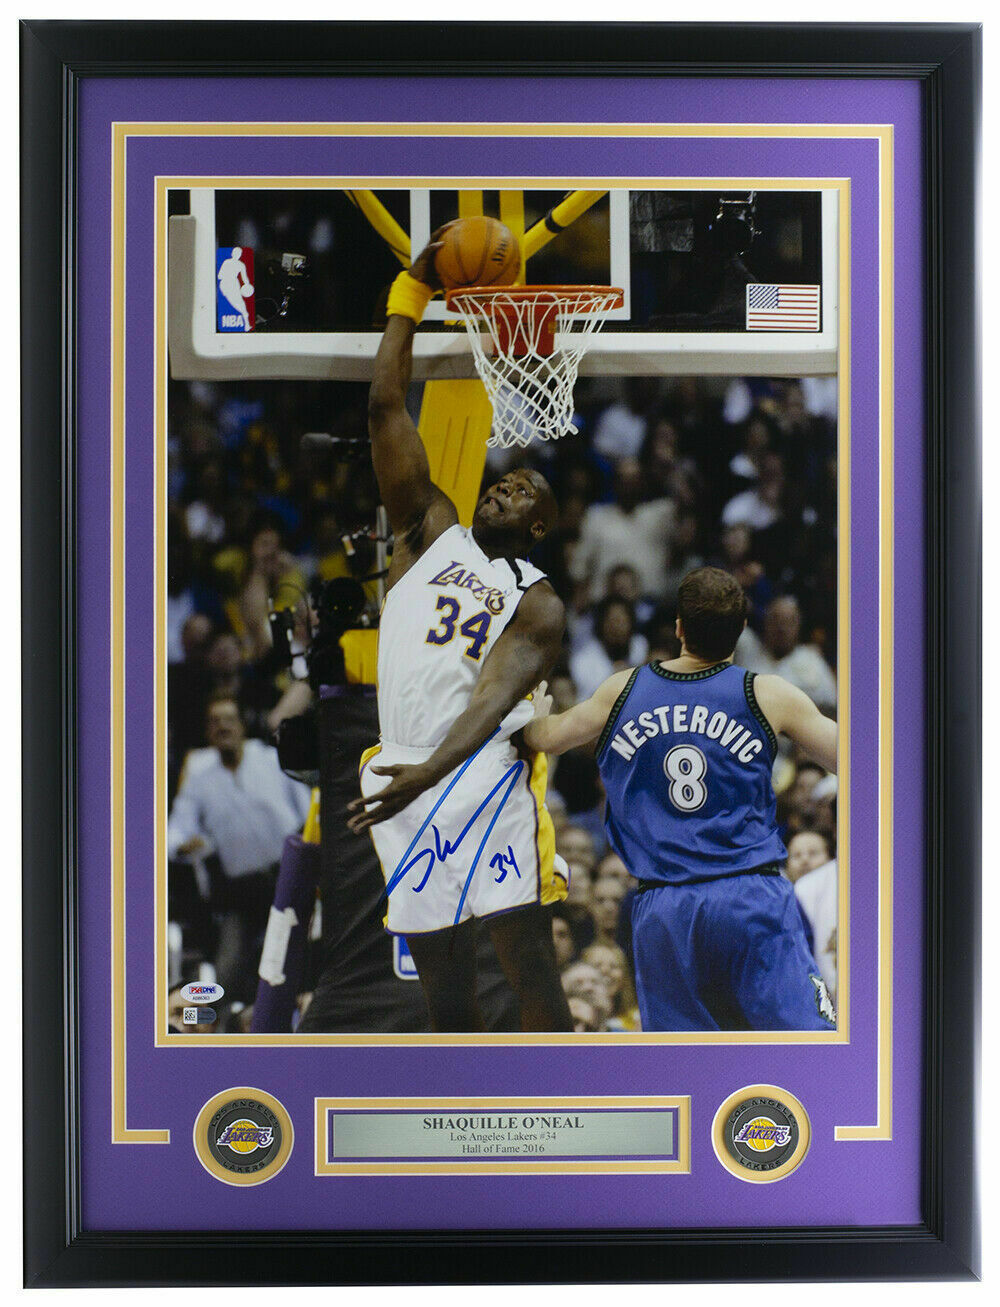 Primary image for Shaquille O'Neal Signed Framed 16x20 Los Angeles Lakers Dunk Photo PSA/DNA